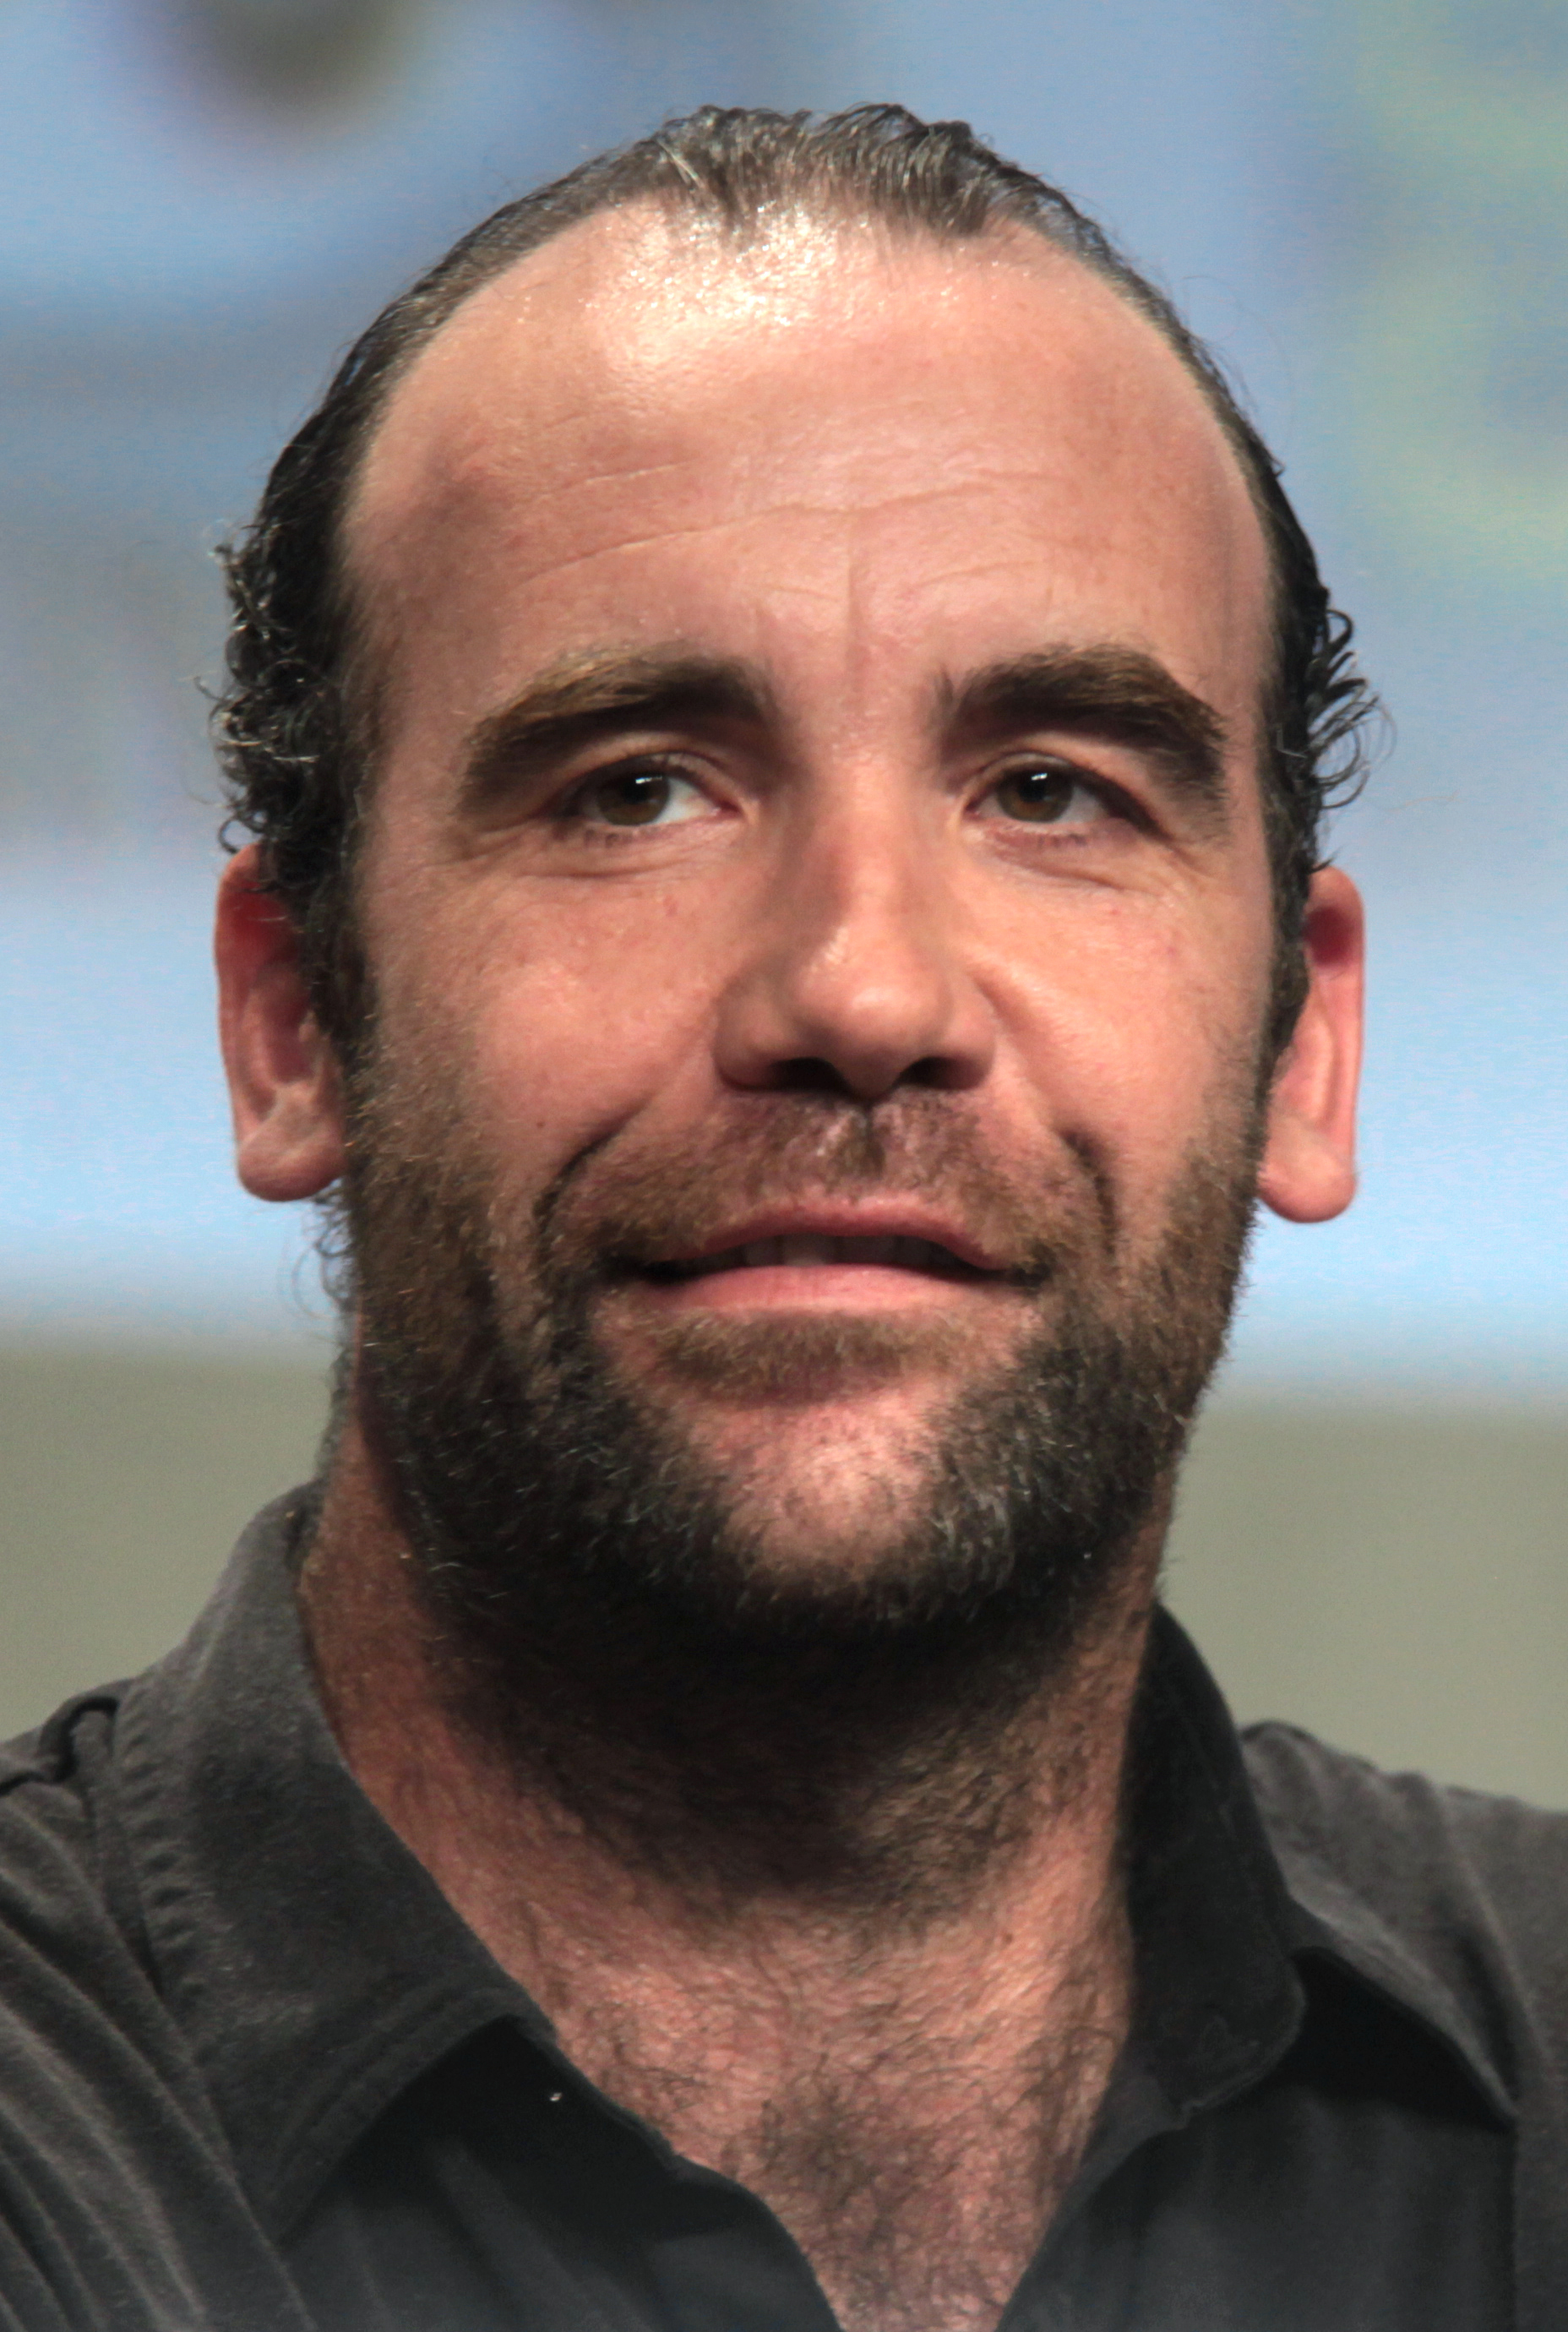 The 49-year old son of father (?) and mother(?) Rory McCann in 2018 photo. Rory McCann earned a  million dollar salary - leaving the net worth at 2 million in 2018